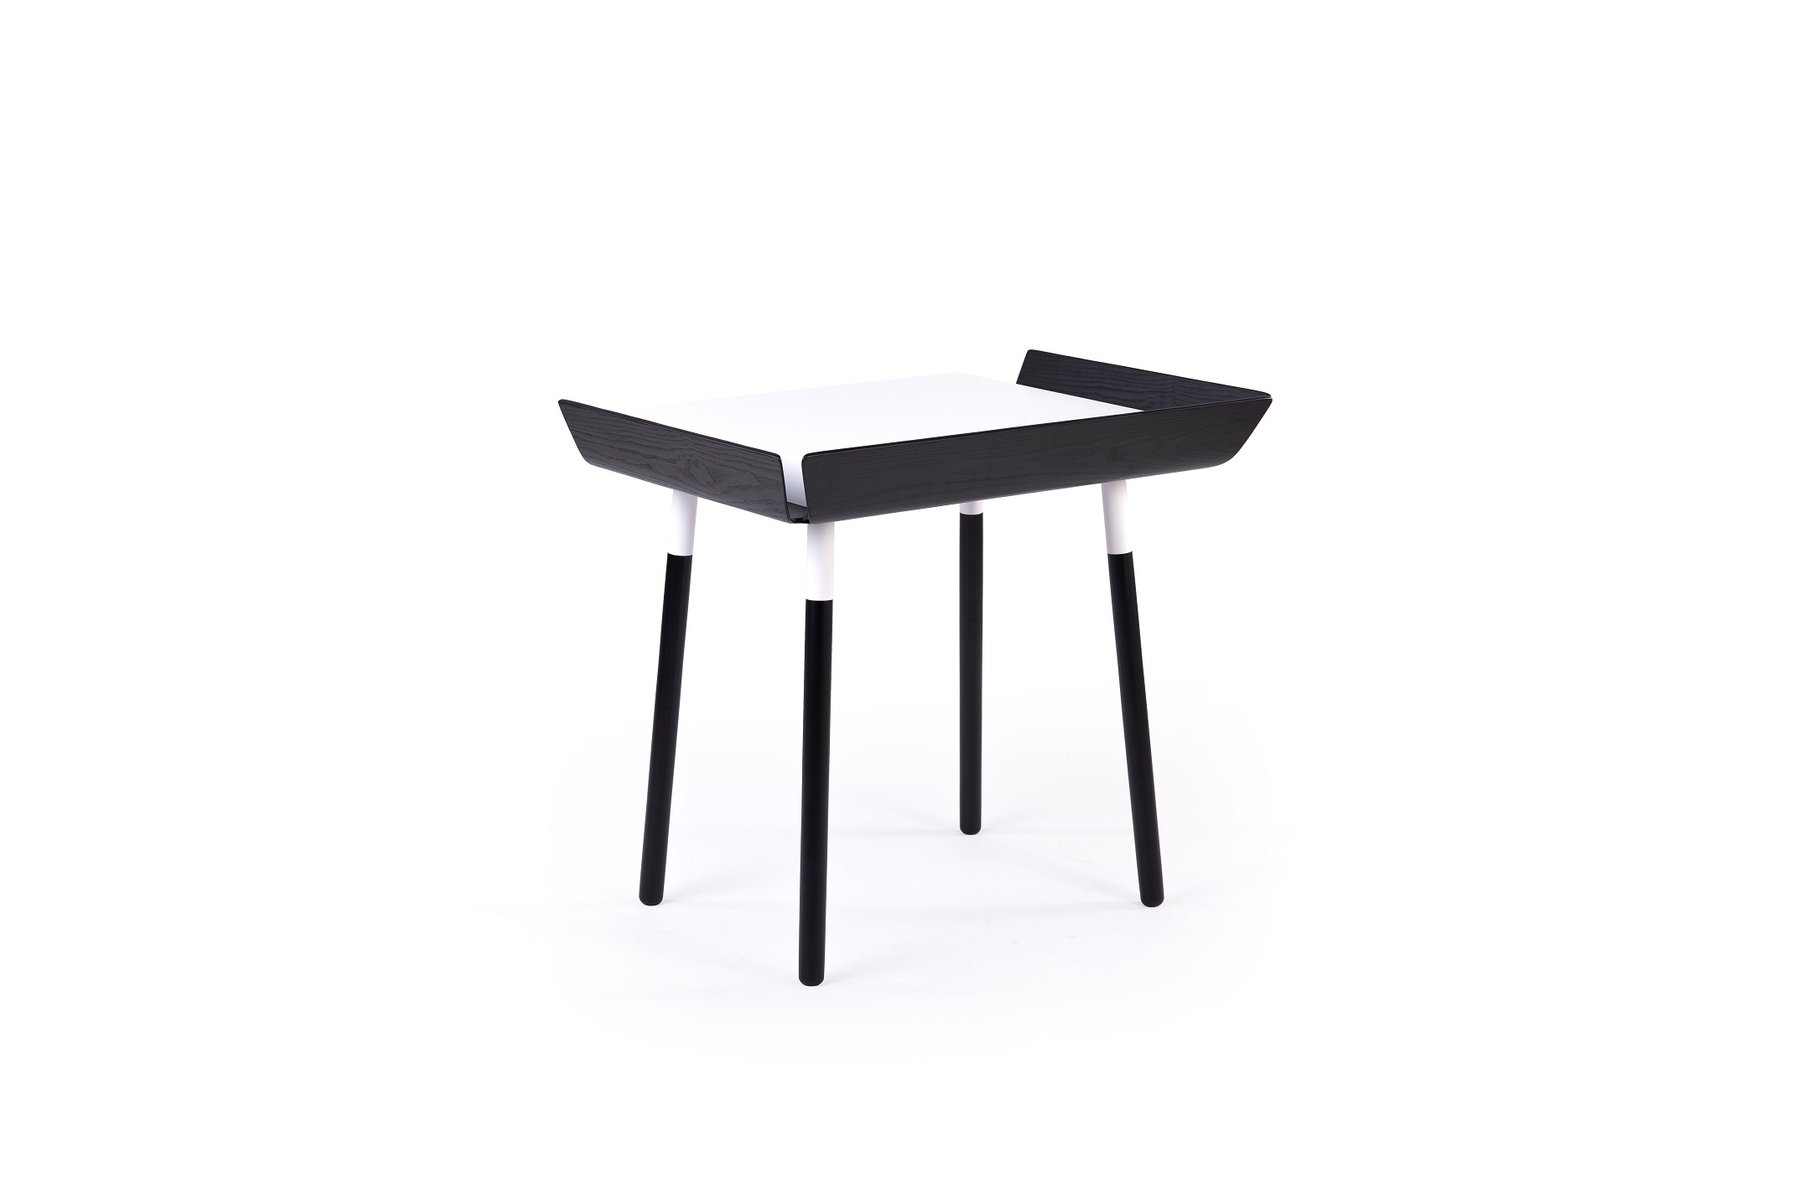 Small Black My Writing Desk In Birch By Etcetc For Emko Sale